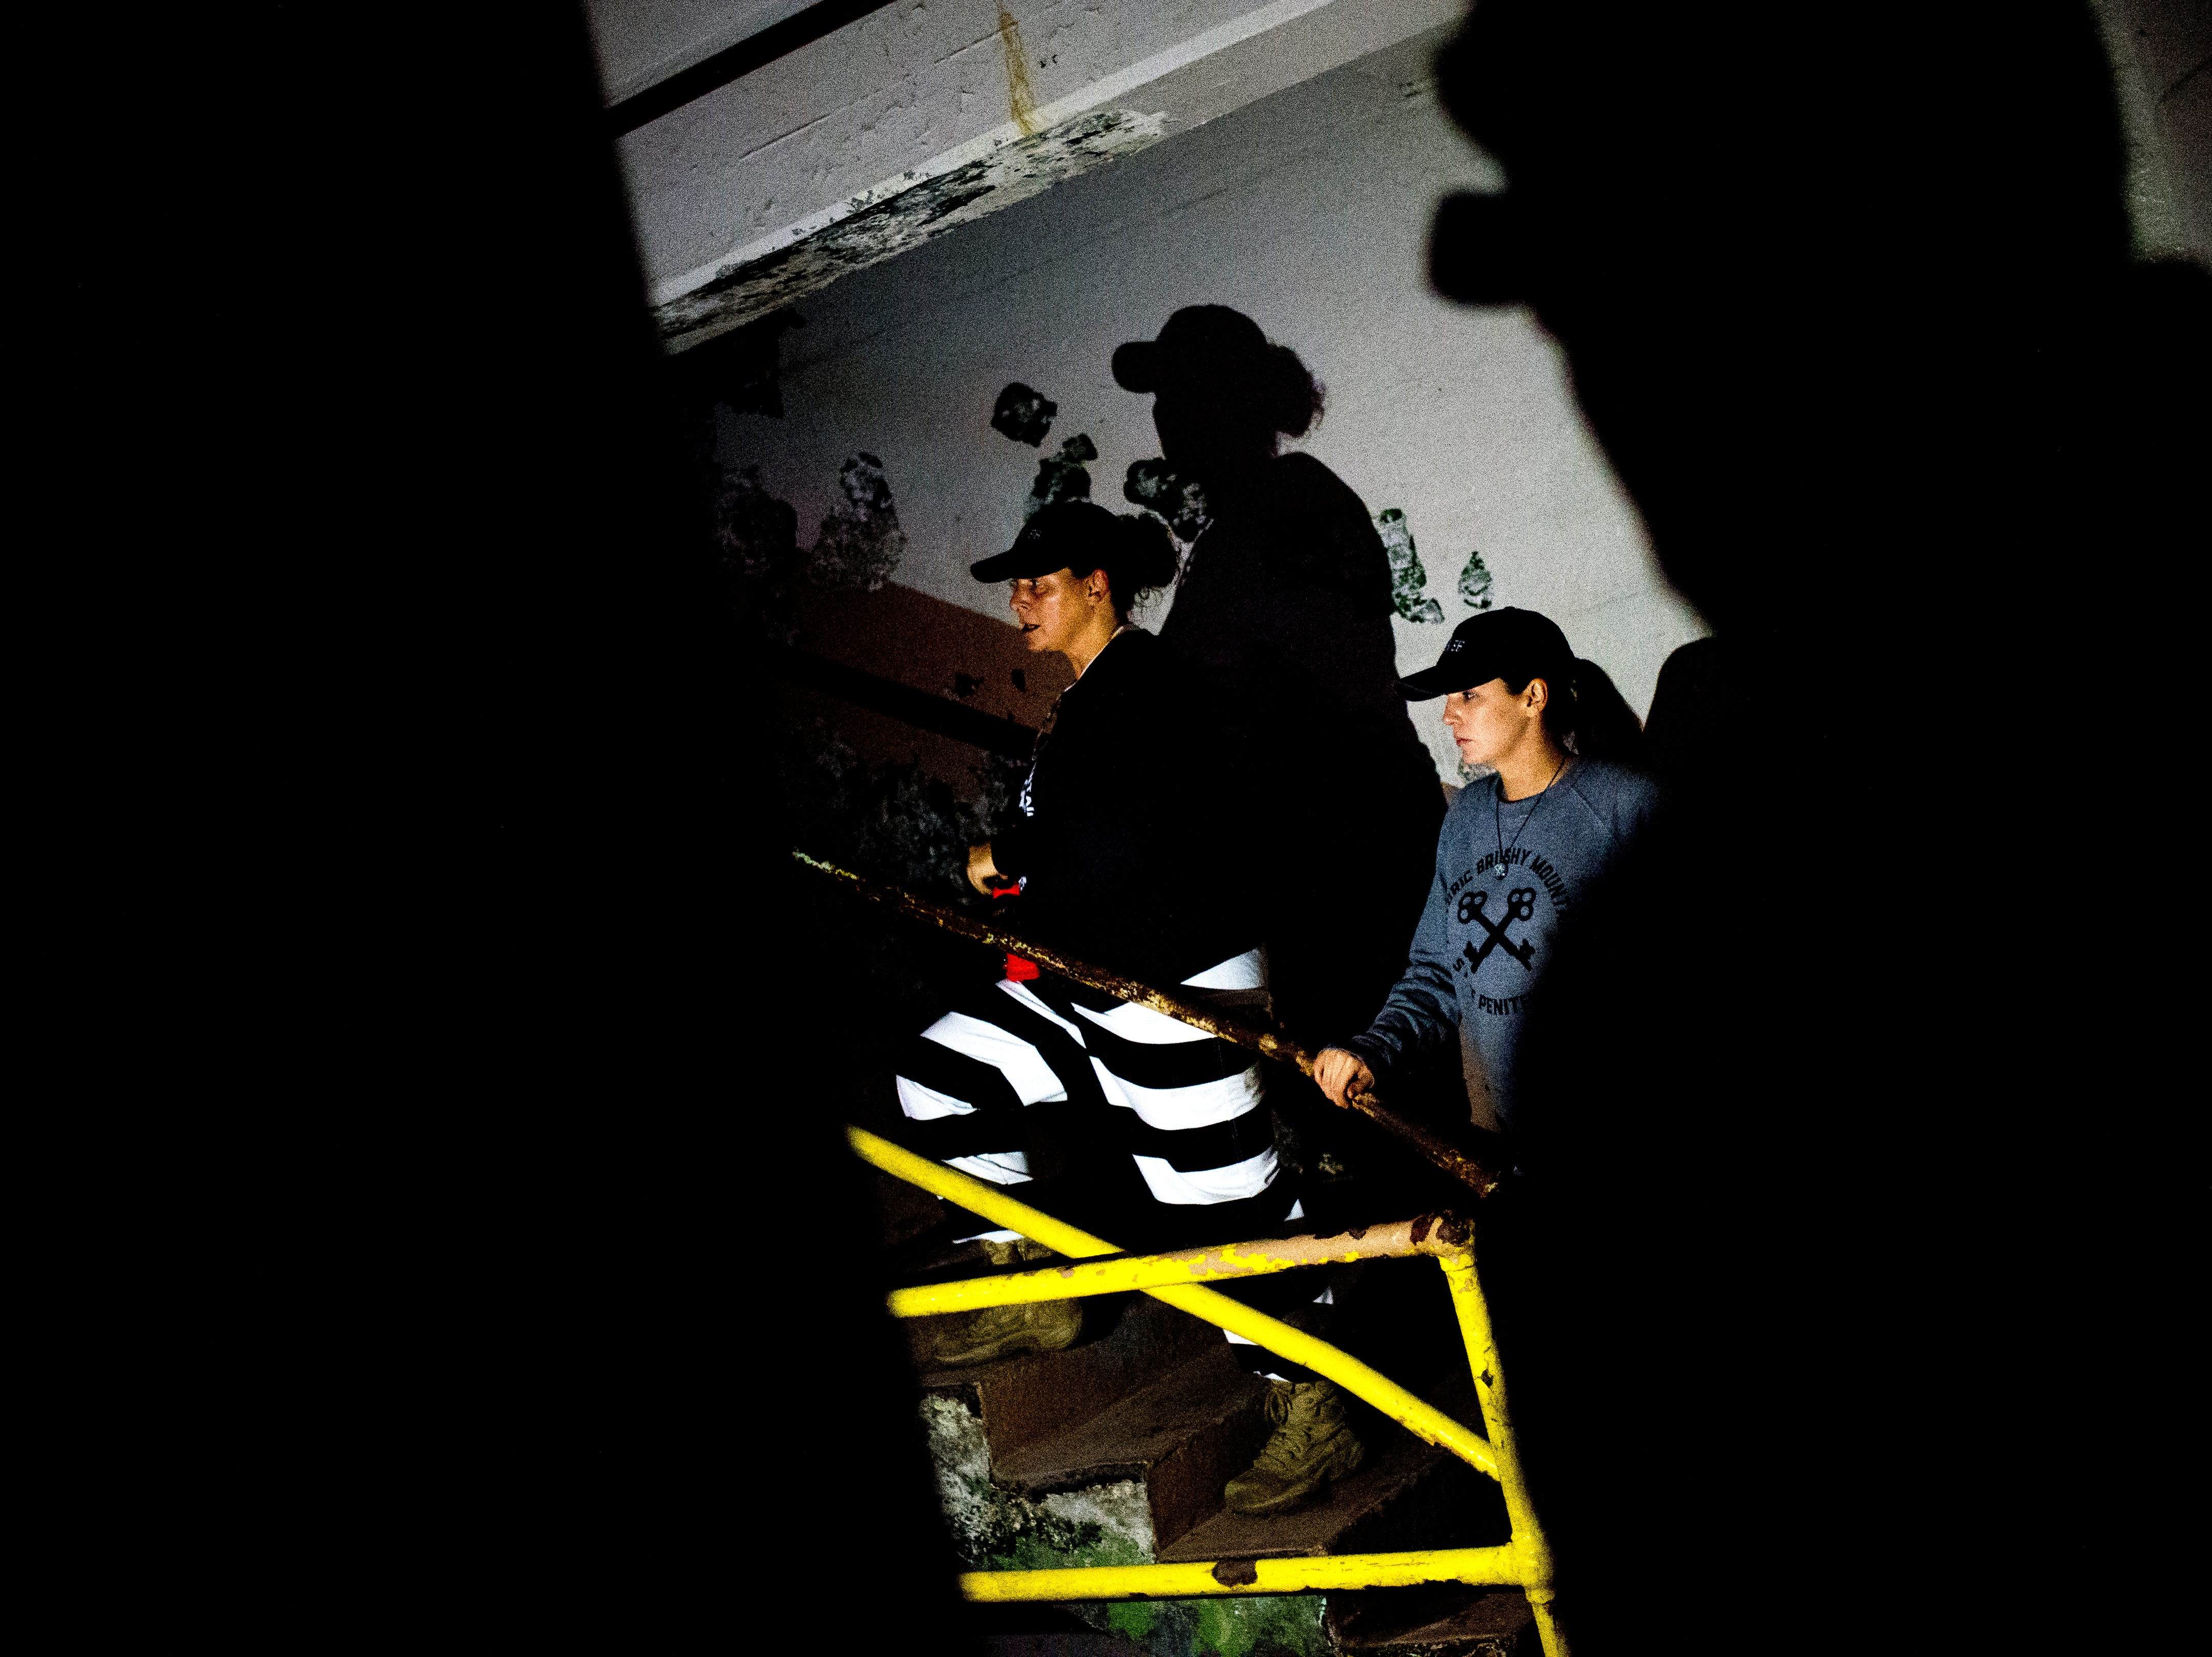 Jaime Brock leads the tour to the next level of a cell block during a paranormal flashlight tour of Brushy Mountain State Penitentiary in Petros, Tennessee on Tuesday, October 16, 2018.